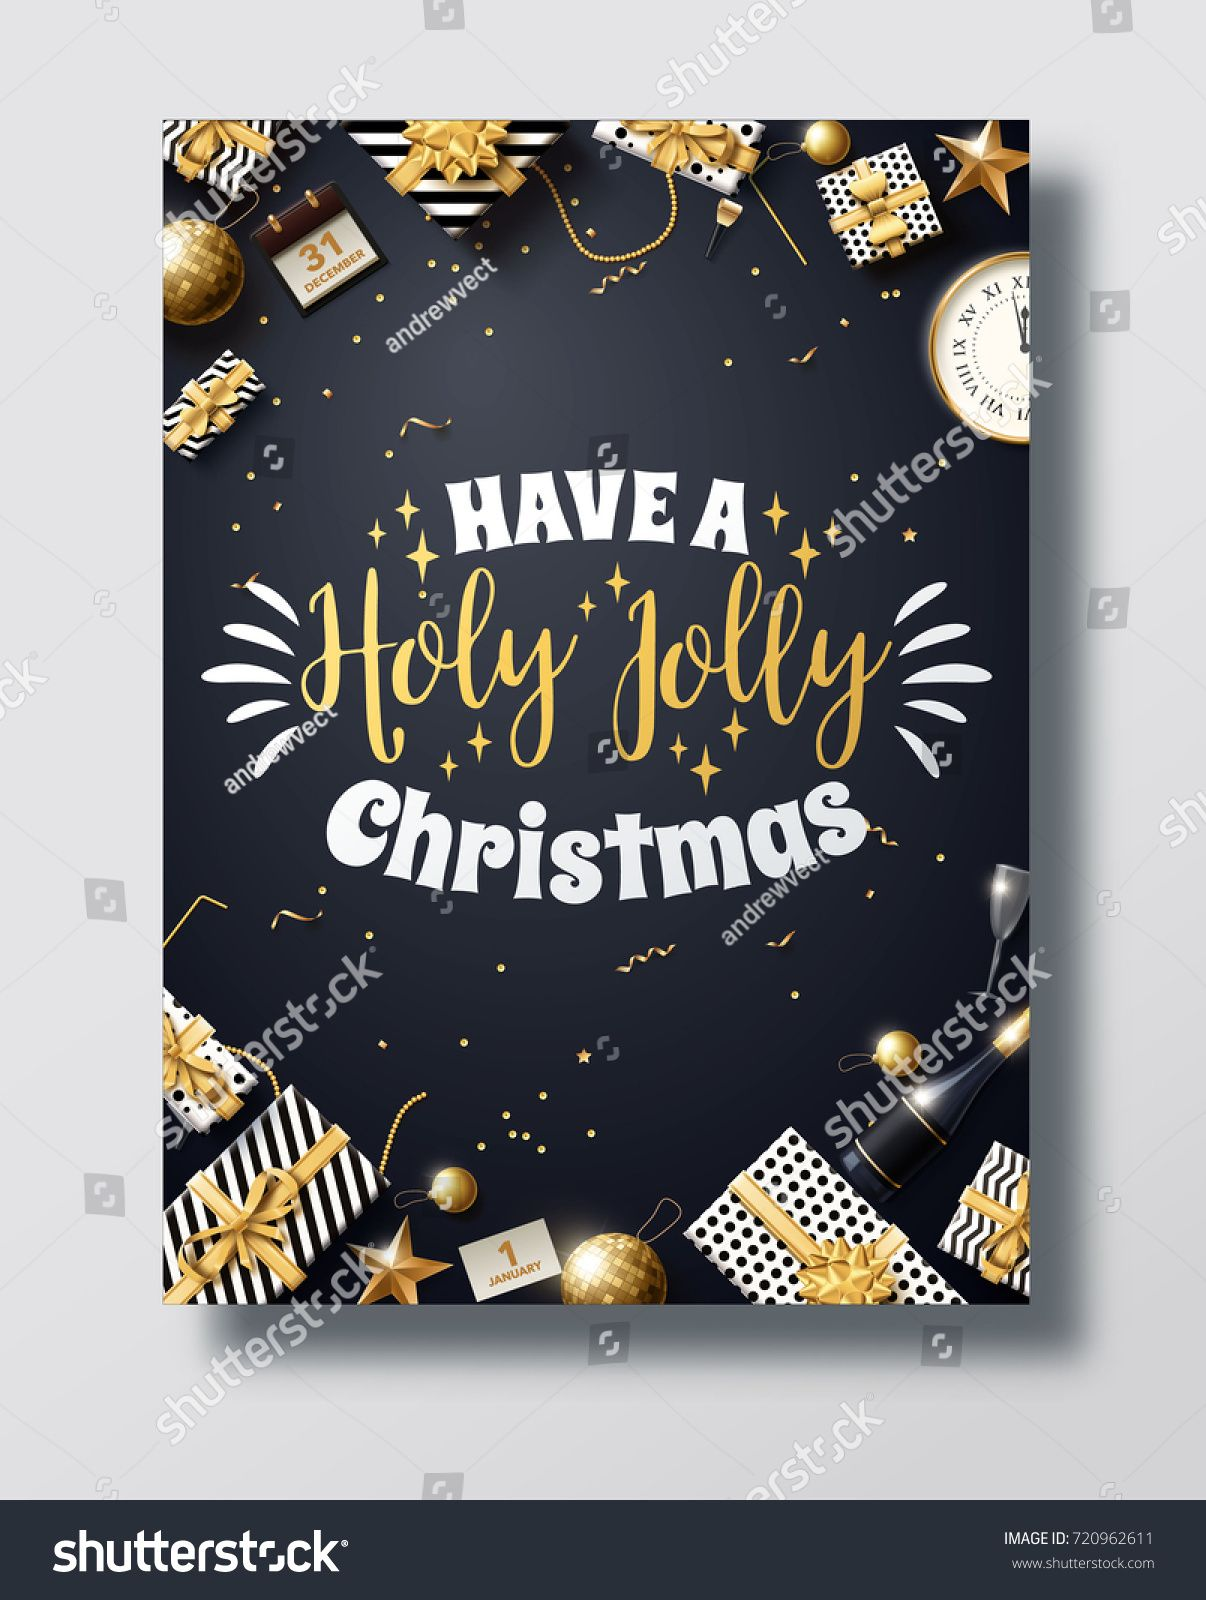 vector illustration of happy new year 2018 gold and black